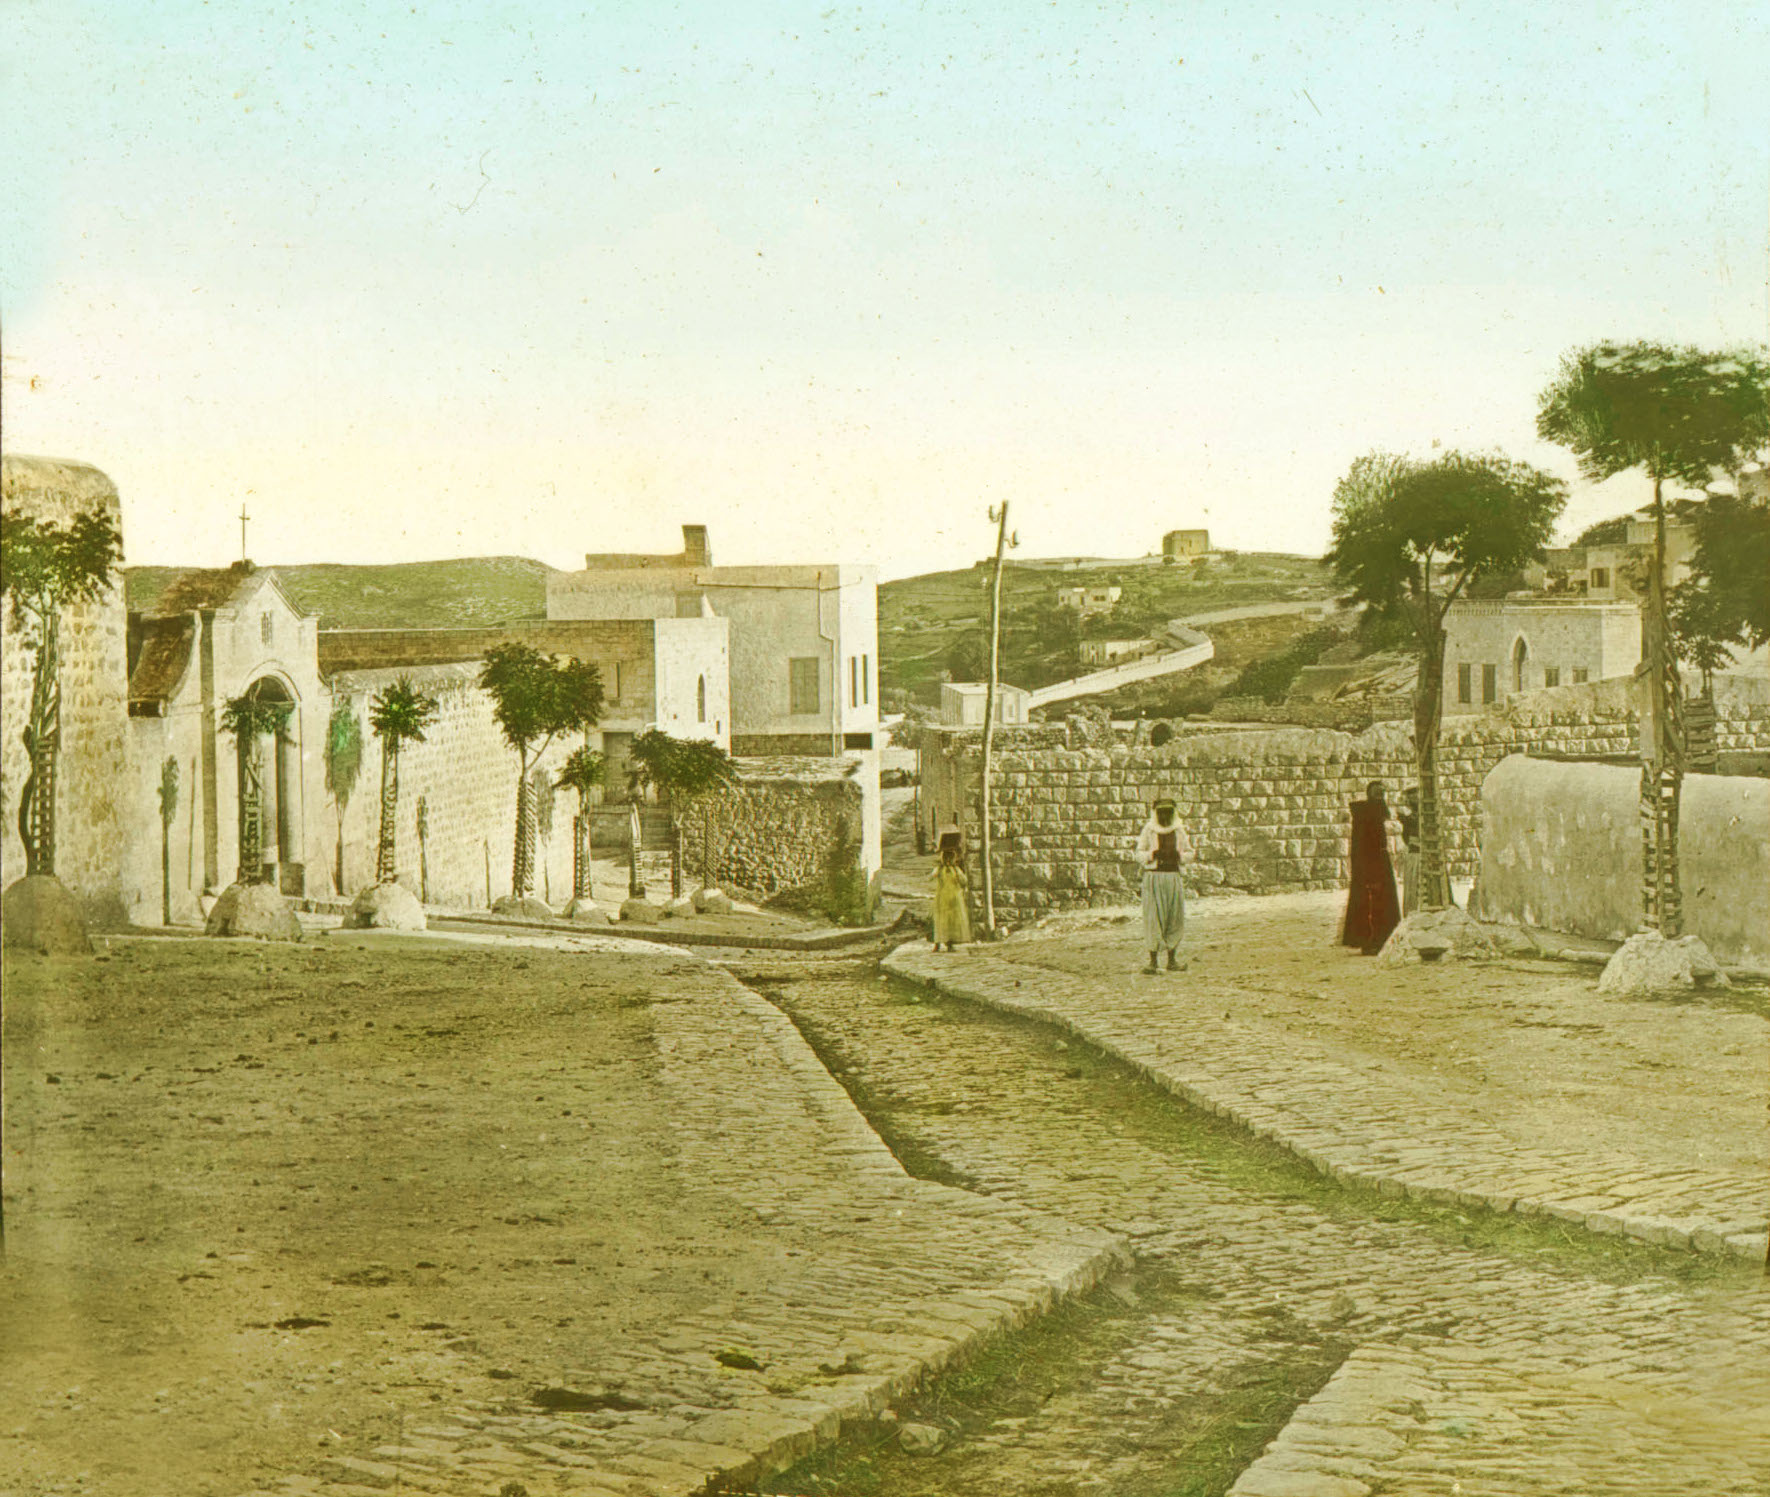 Nazareth - الناصرة : NAZARETH - Late 19th, early 20th c. 30 (Street View, 1880s)